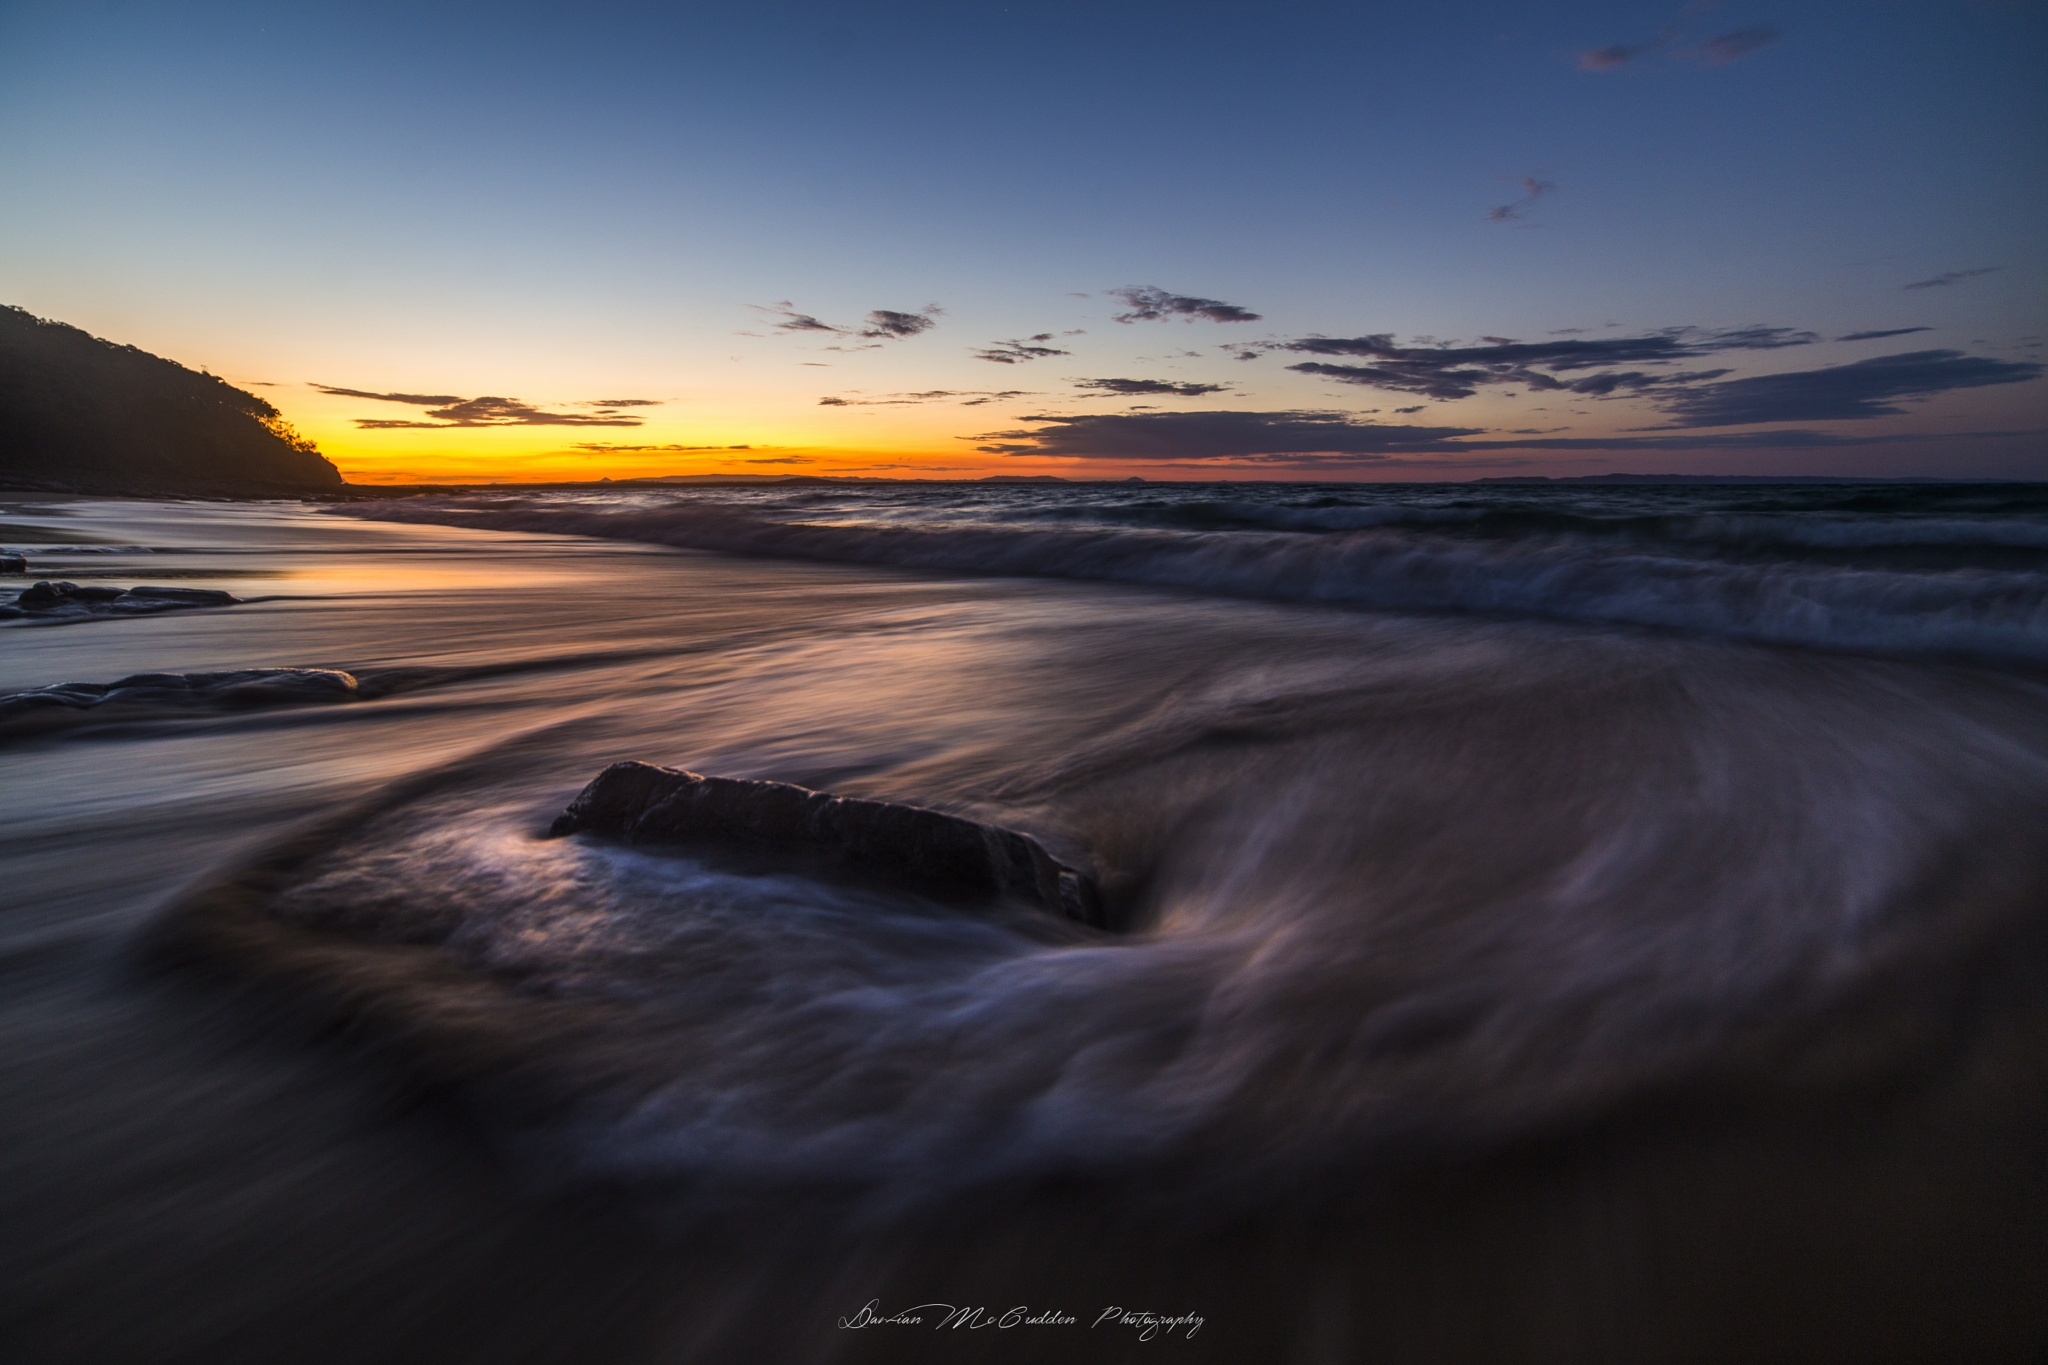 **Go with the flow** by Damian McCudden